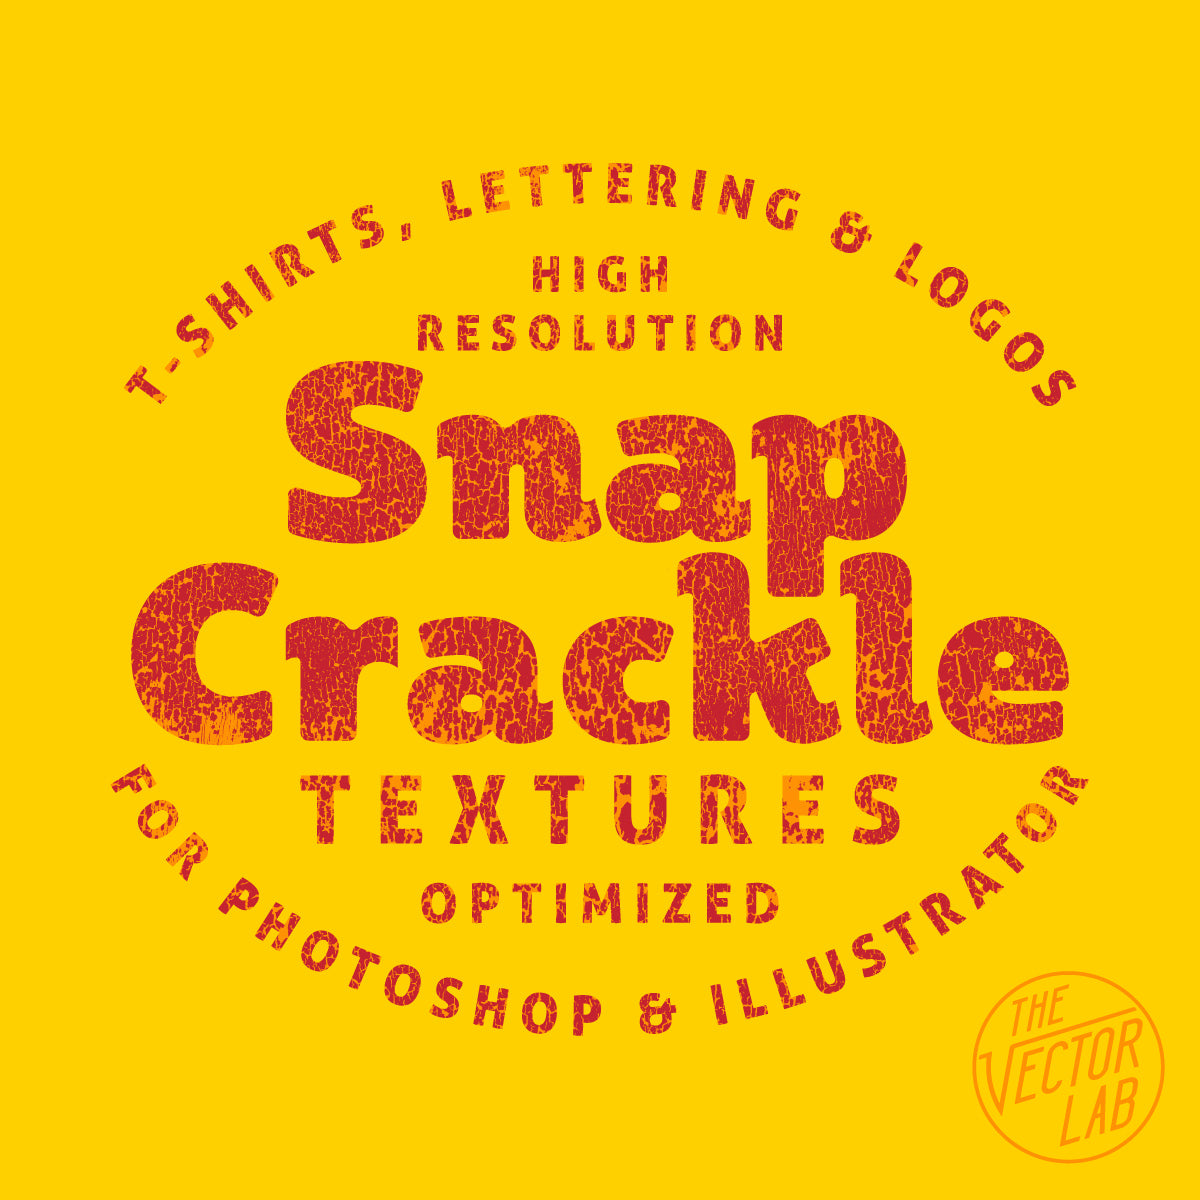 Snap Crackle - Paint Crackle Textures for Photoshop and Illustrator